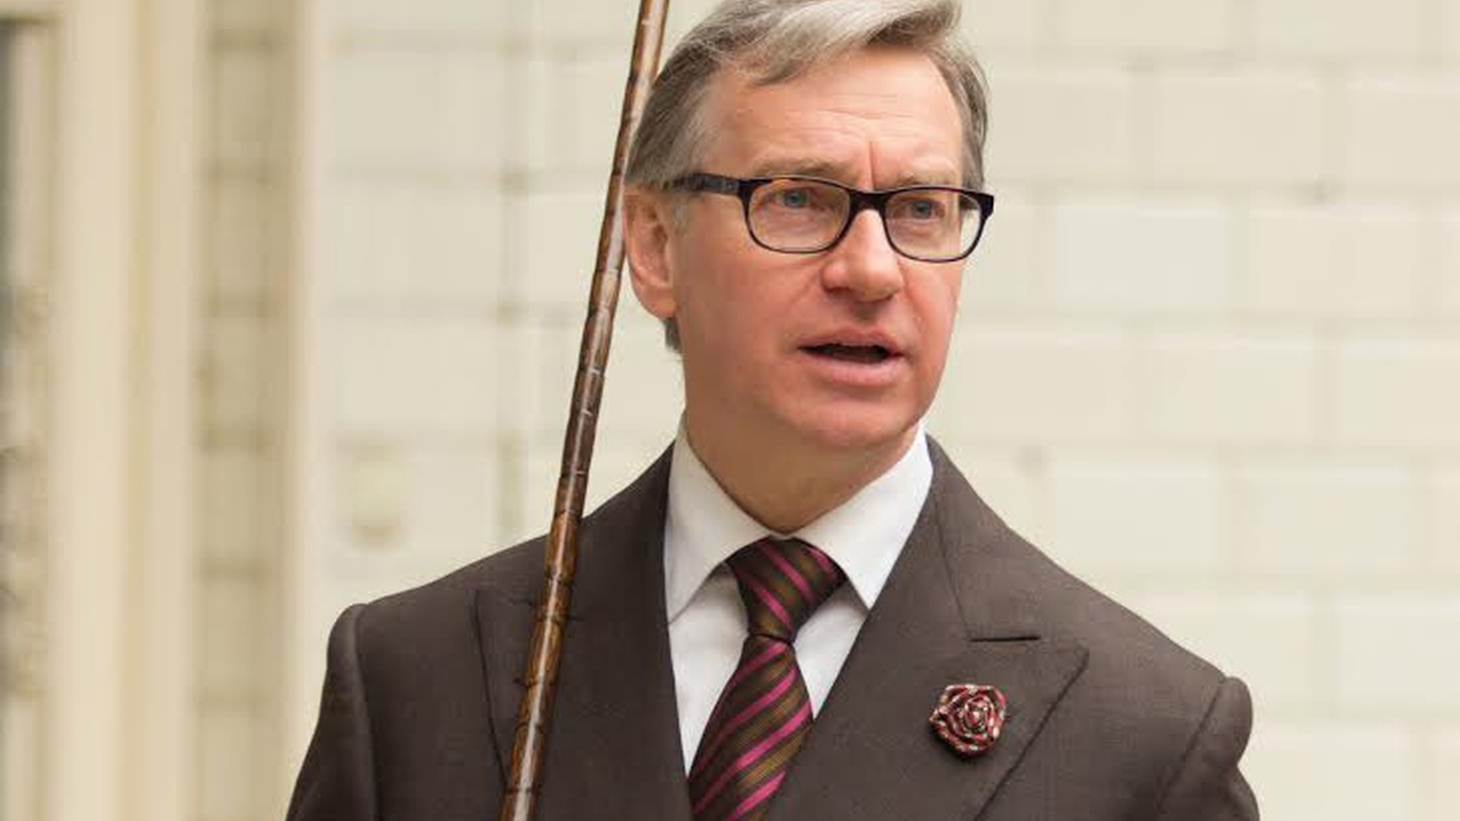 Director Paul Feig visits The Treatment to discuss the pop culture pressures of rebooting Ghostbusters and the surprising responses to its release.